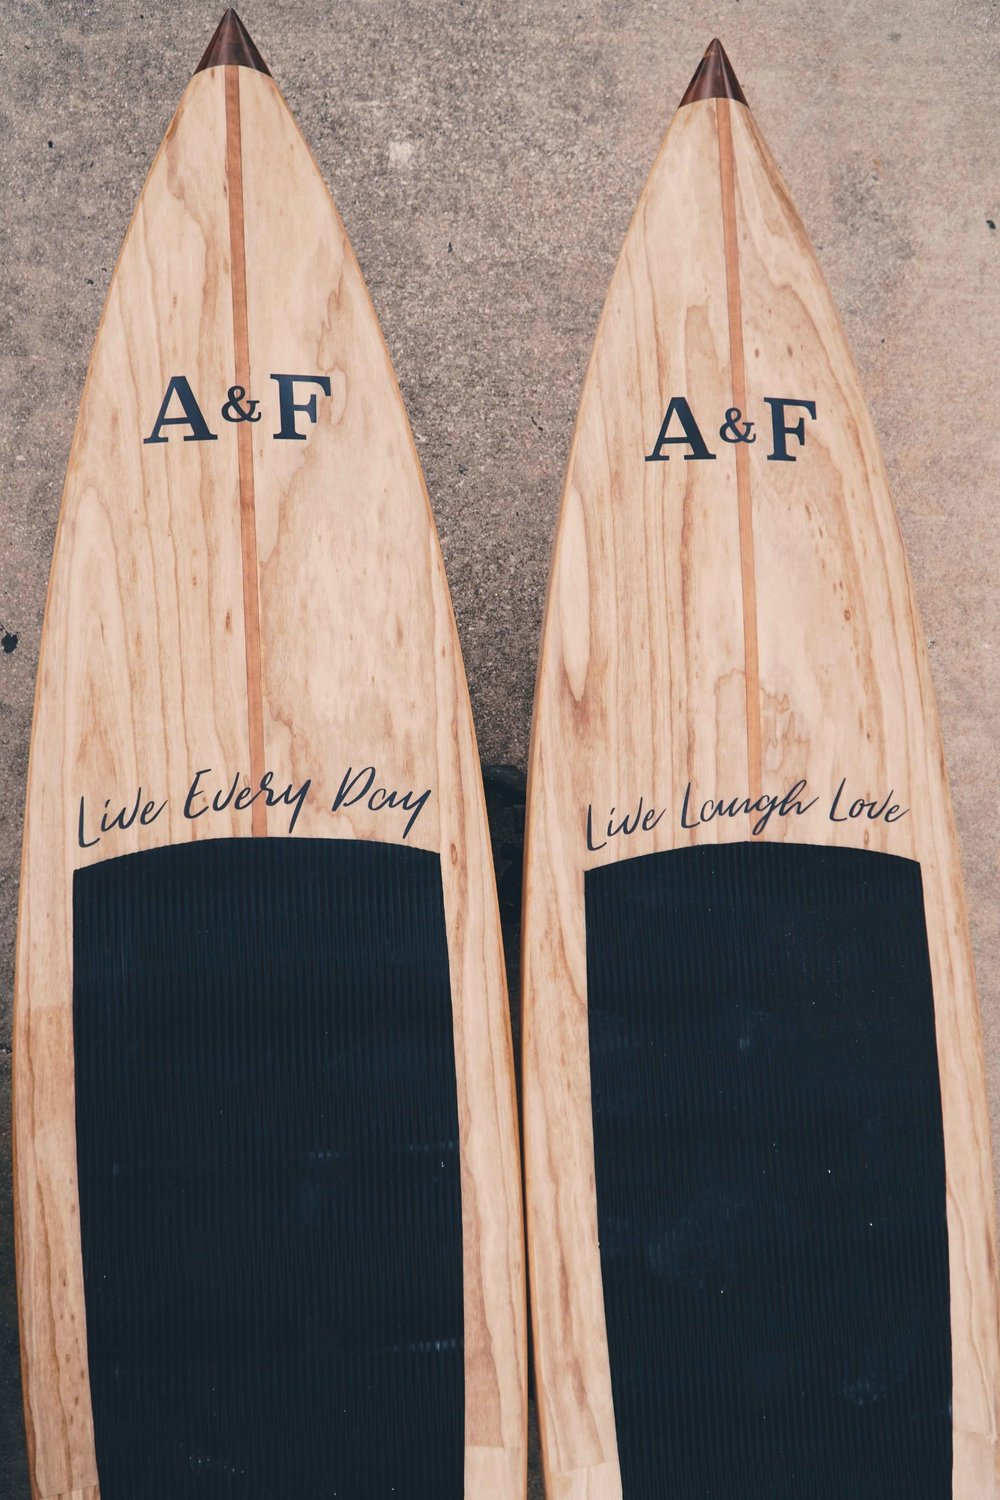 He was turning 40. She wanted matching paddle boards. Cheers to 40 more years!